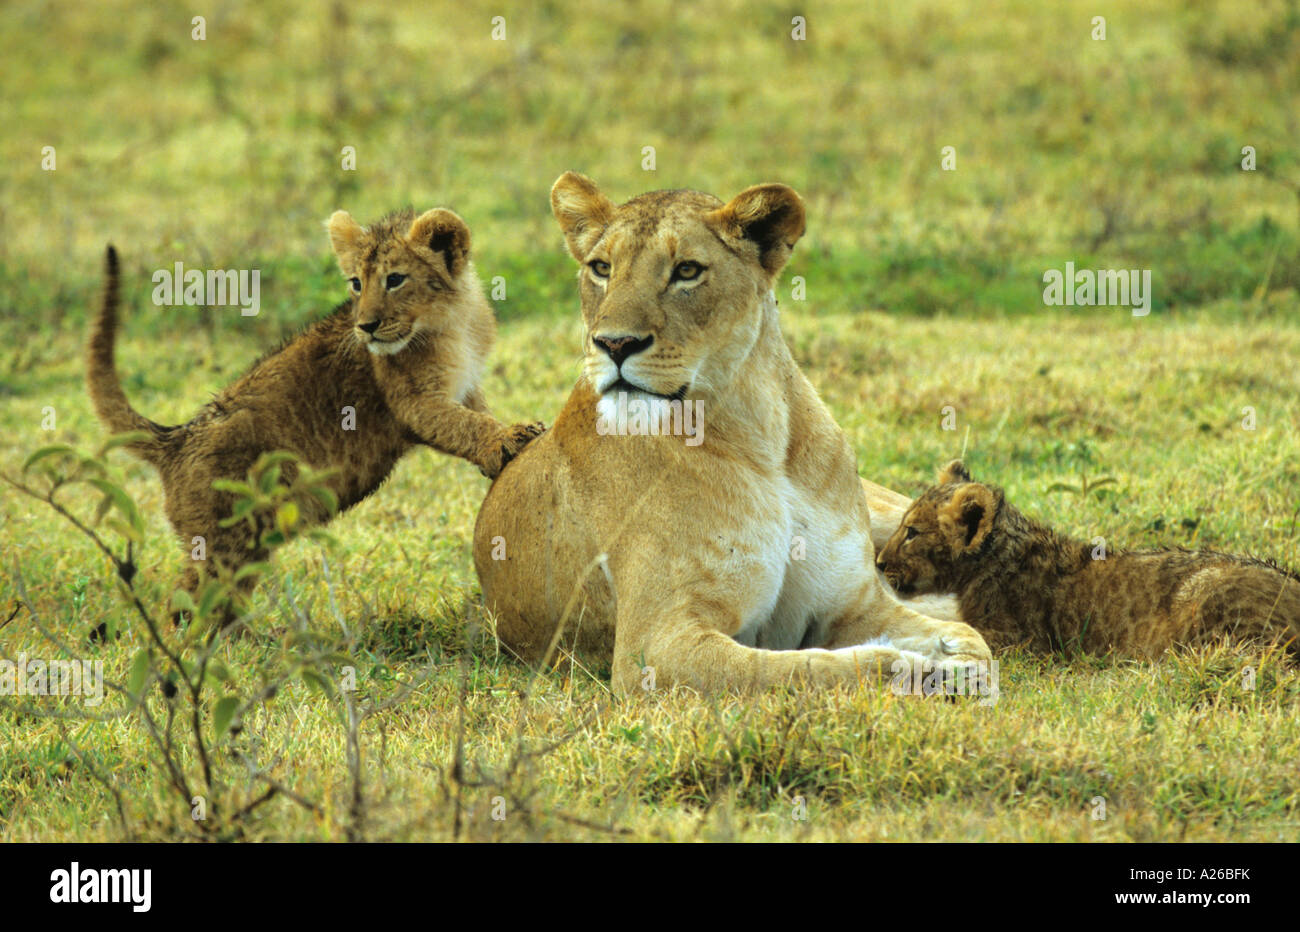 Lion Standing Hind Legs Stock Photos Amp Lion Standing Hind